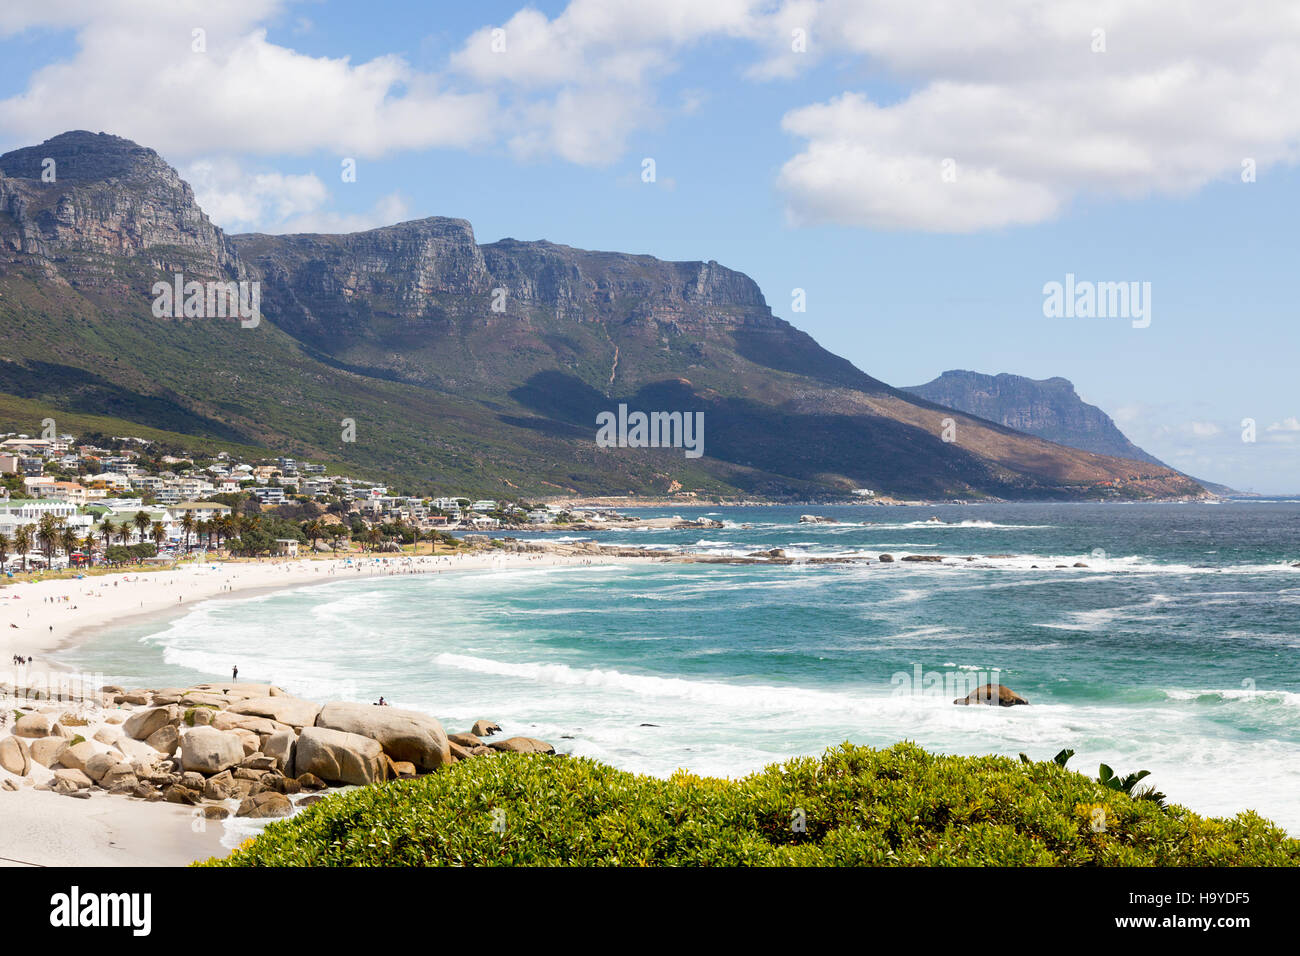 Camps Bay beach and the Twelve Apostles mountains, Cape Town, South Africa - Stock Image